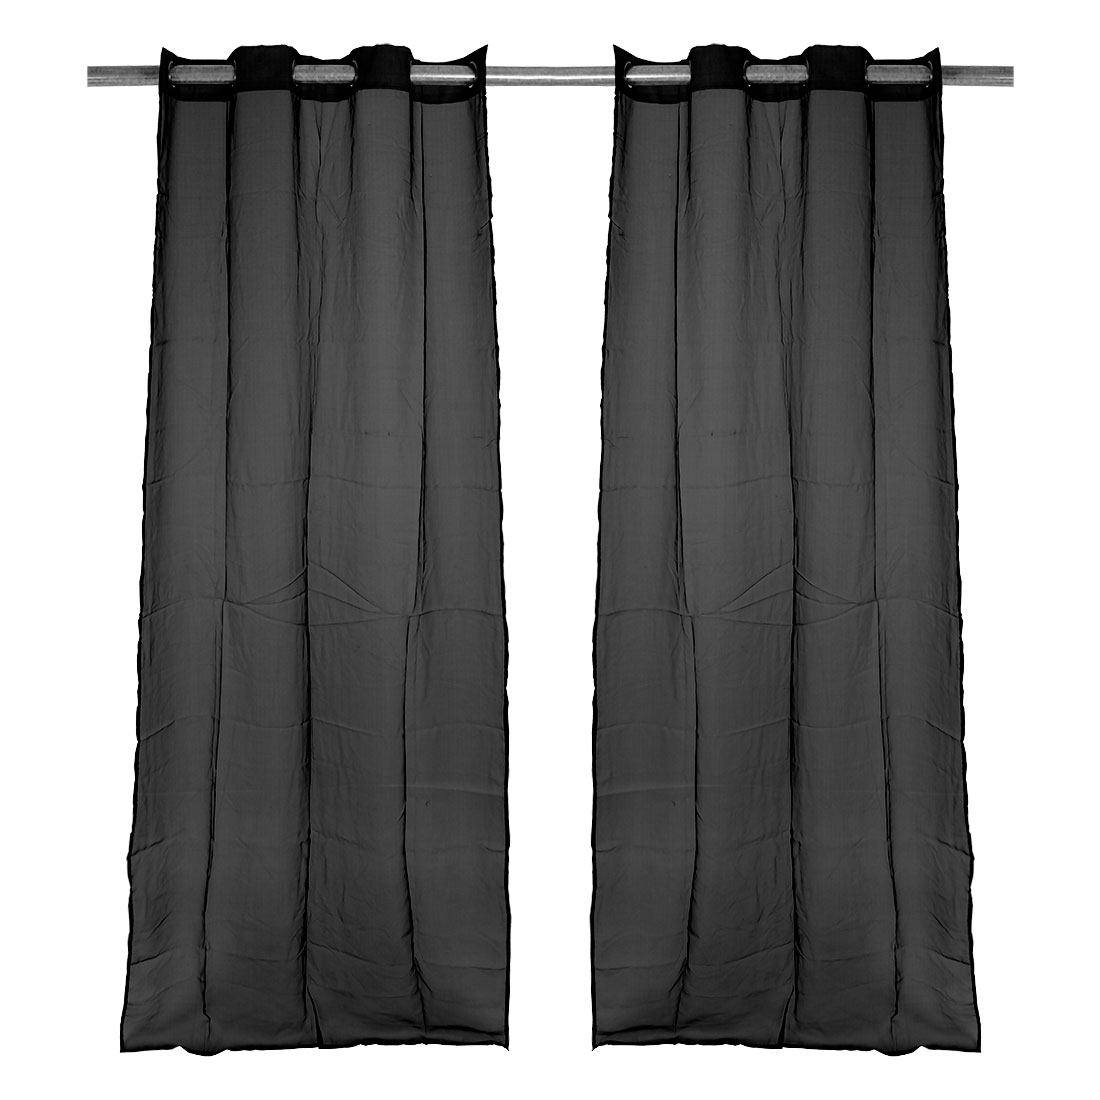 PiccoCasa Tulle Voile Window Drape Curtain Panel Divider Sheer Valances Black